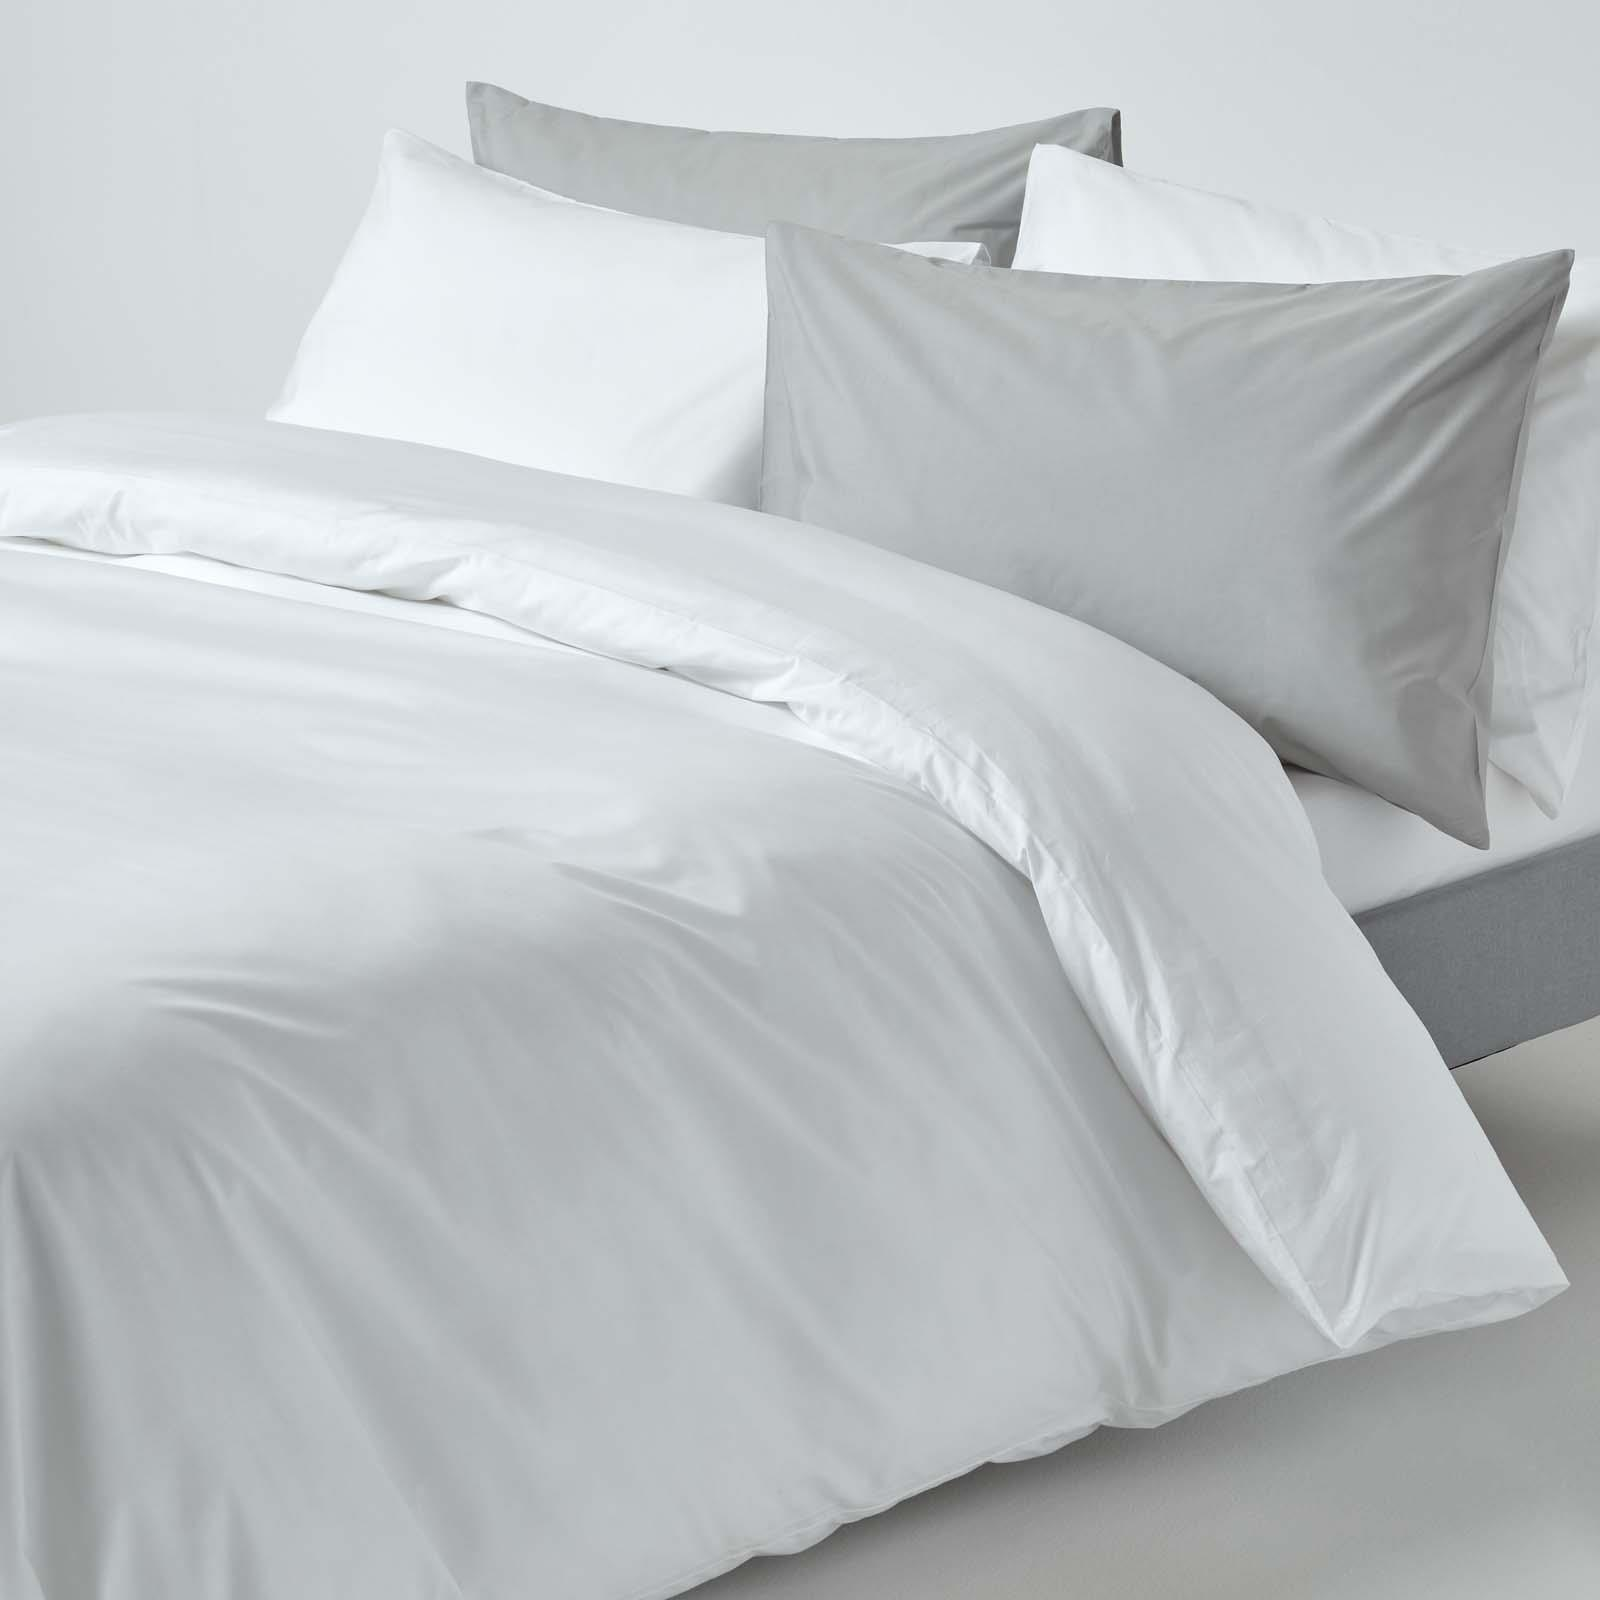 200 Thread Count 100/% Pure /& Soft Egyptian Cotton FLAT Bed Sheets All Sizes